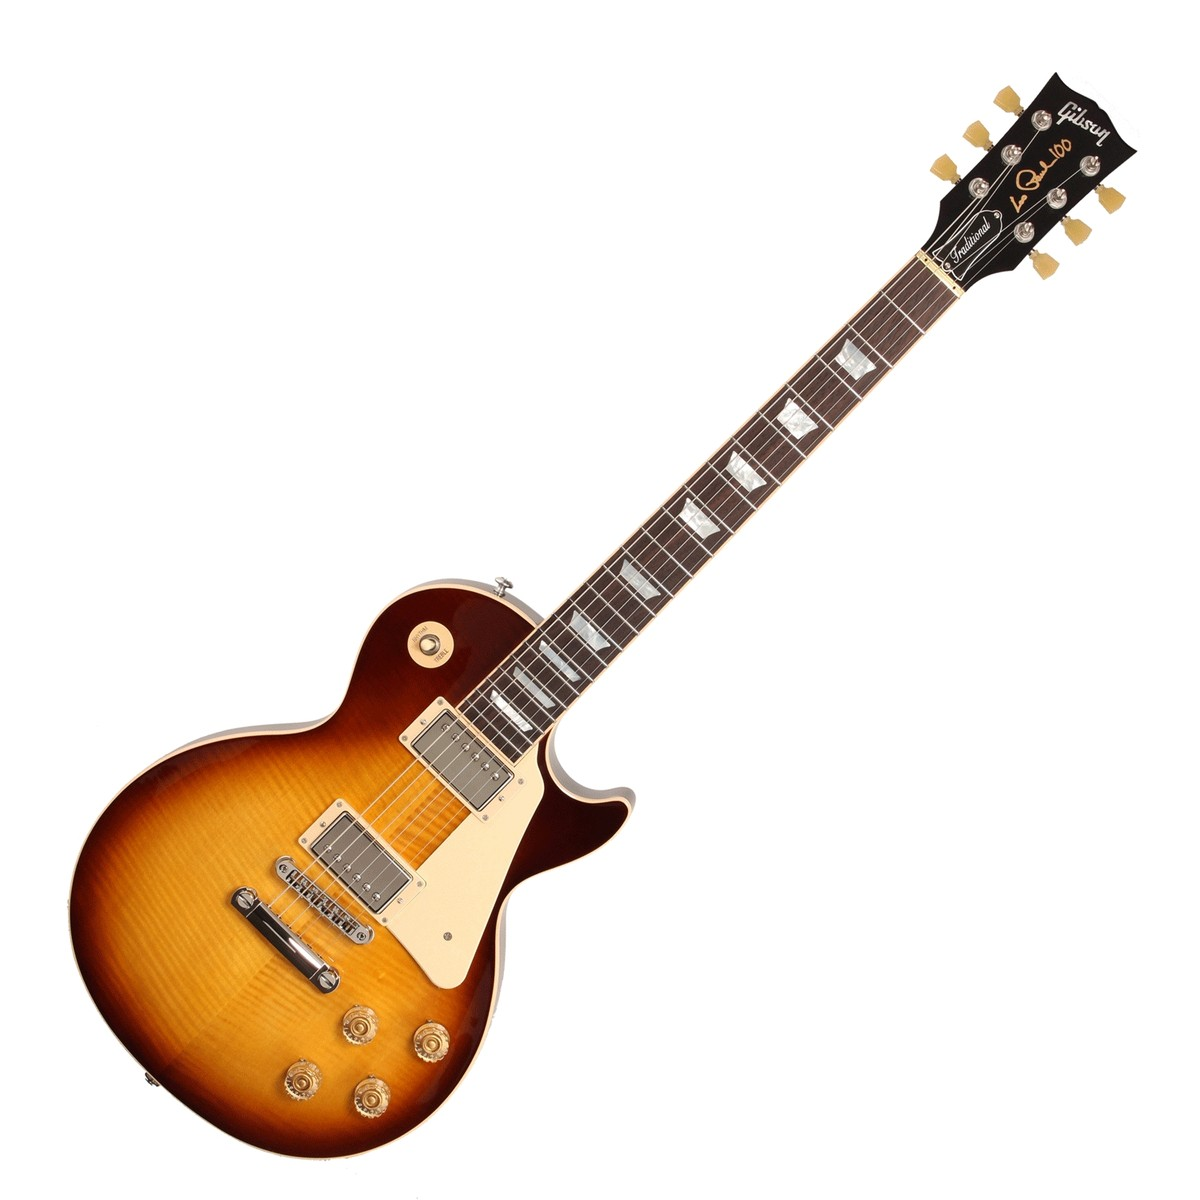 disc gibson les paul traditional sprint run tobacco sunburst at. Black Bedroom Furniture Sets. Home Design Ideas